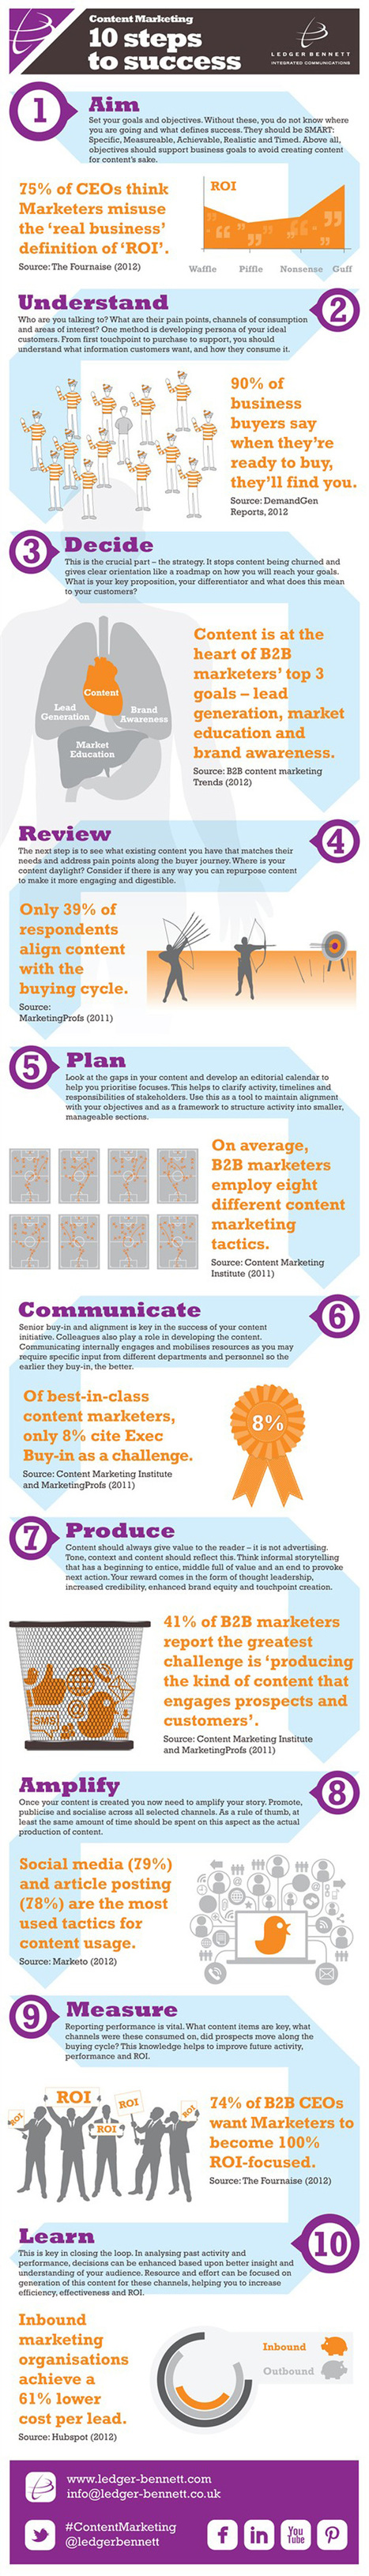 10 Steps To Create Successful Content Marketing Campaign [Infographic] | Daily SMART Marketing | Scoop.it